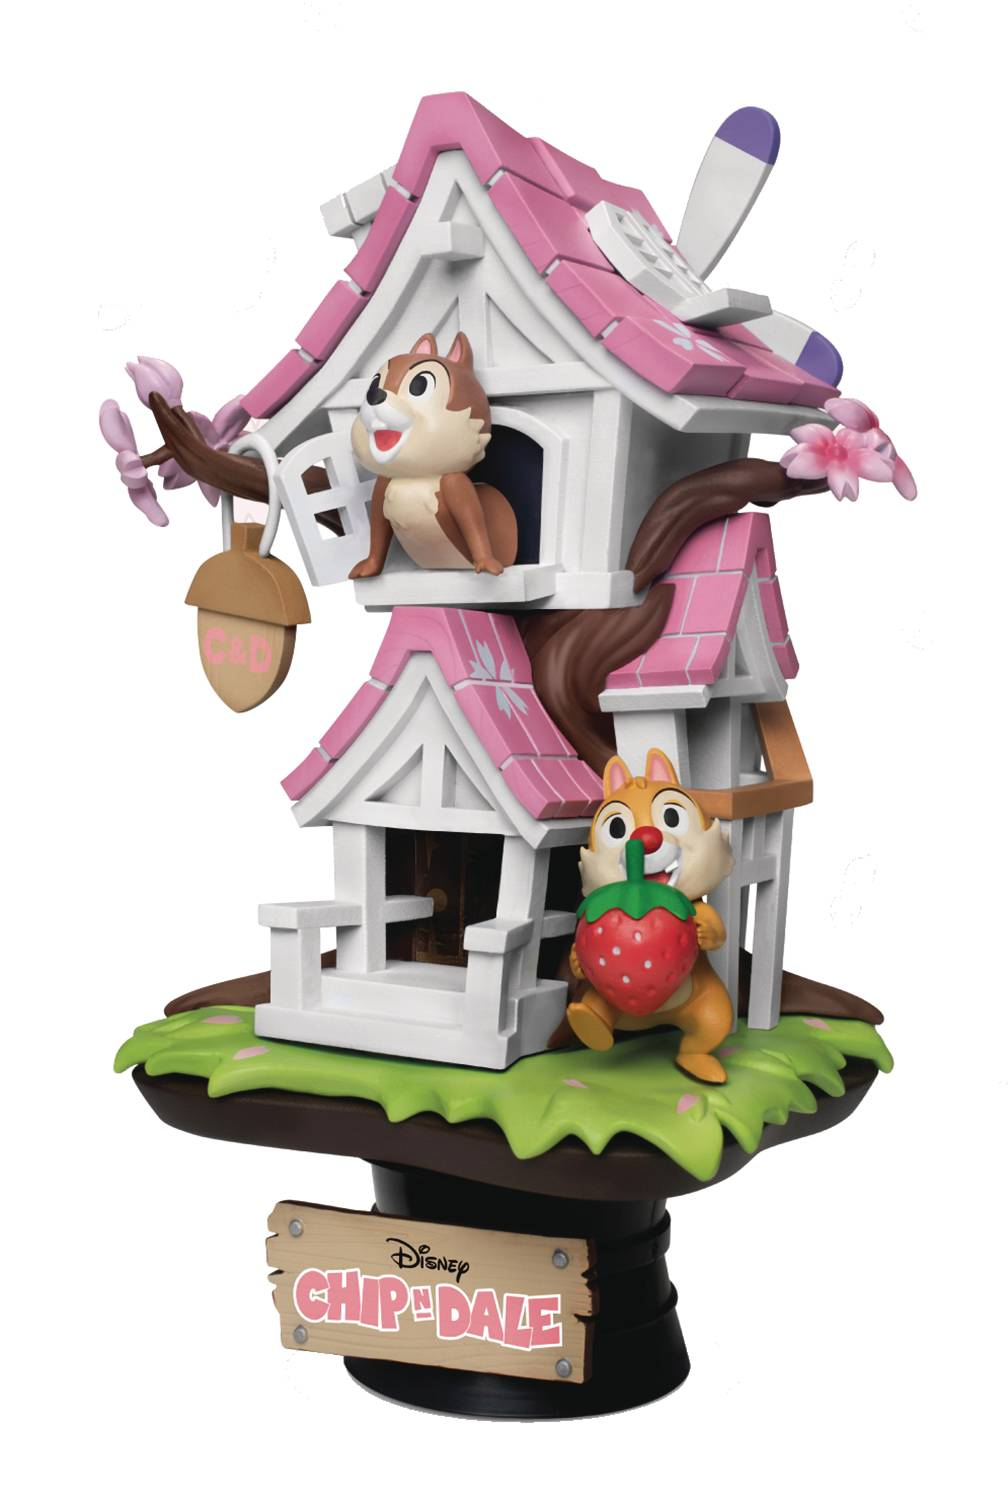 DISNEY DS-057 CHIP N DALE TREEHOUSE PX 6IN STATUE CHERRY VER